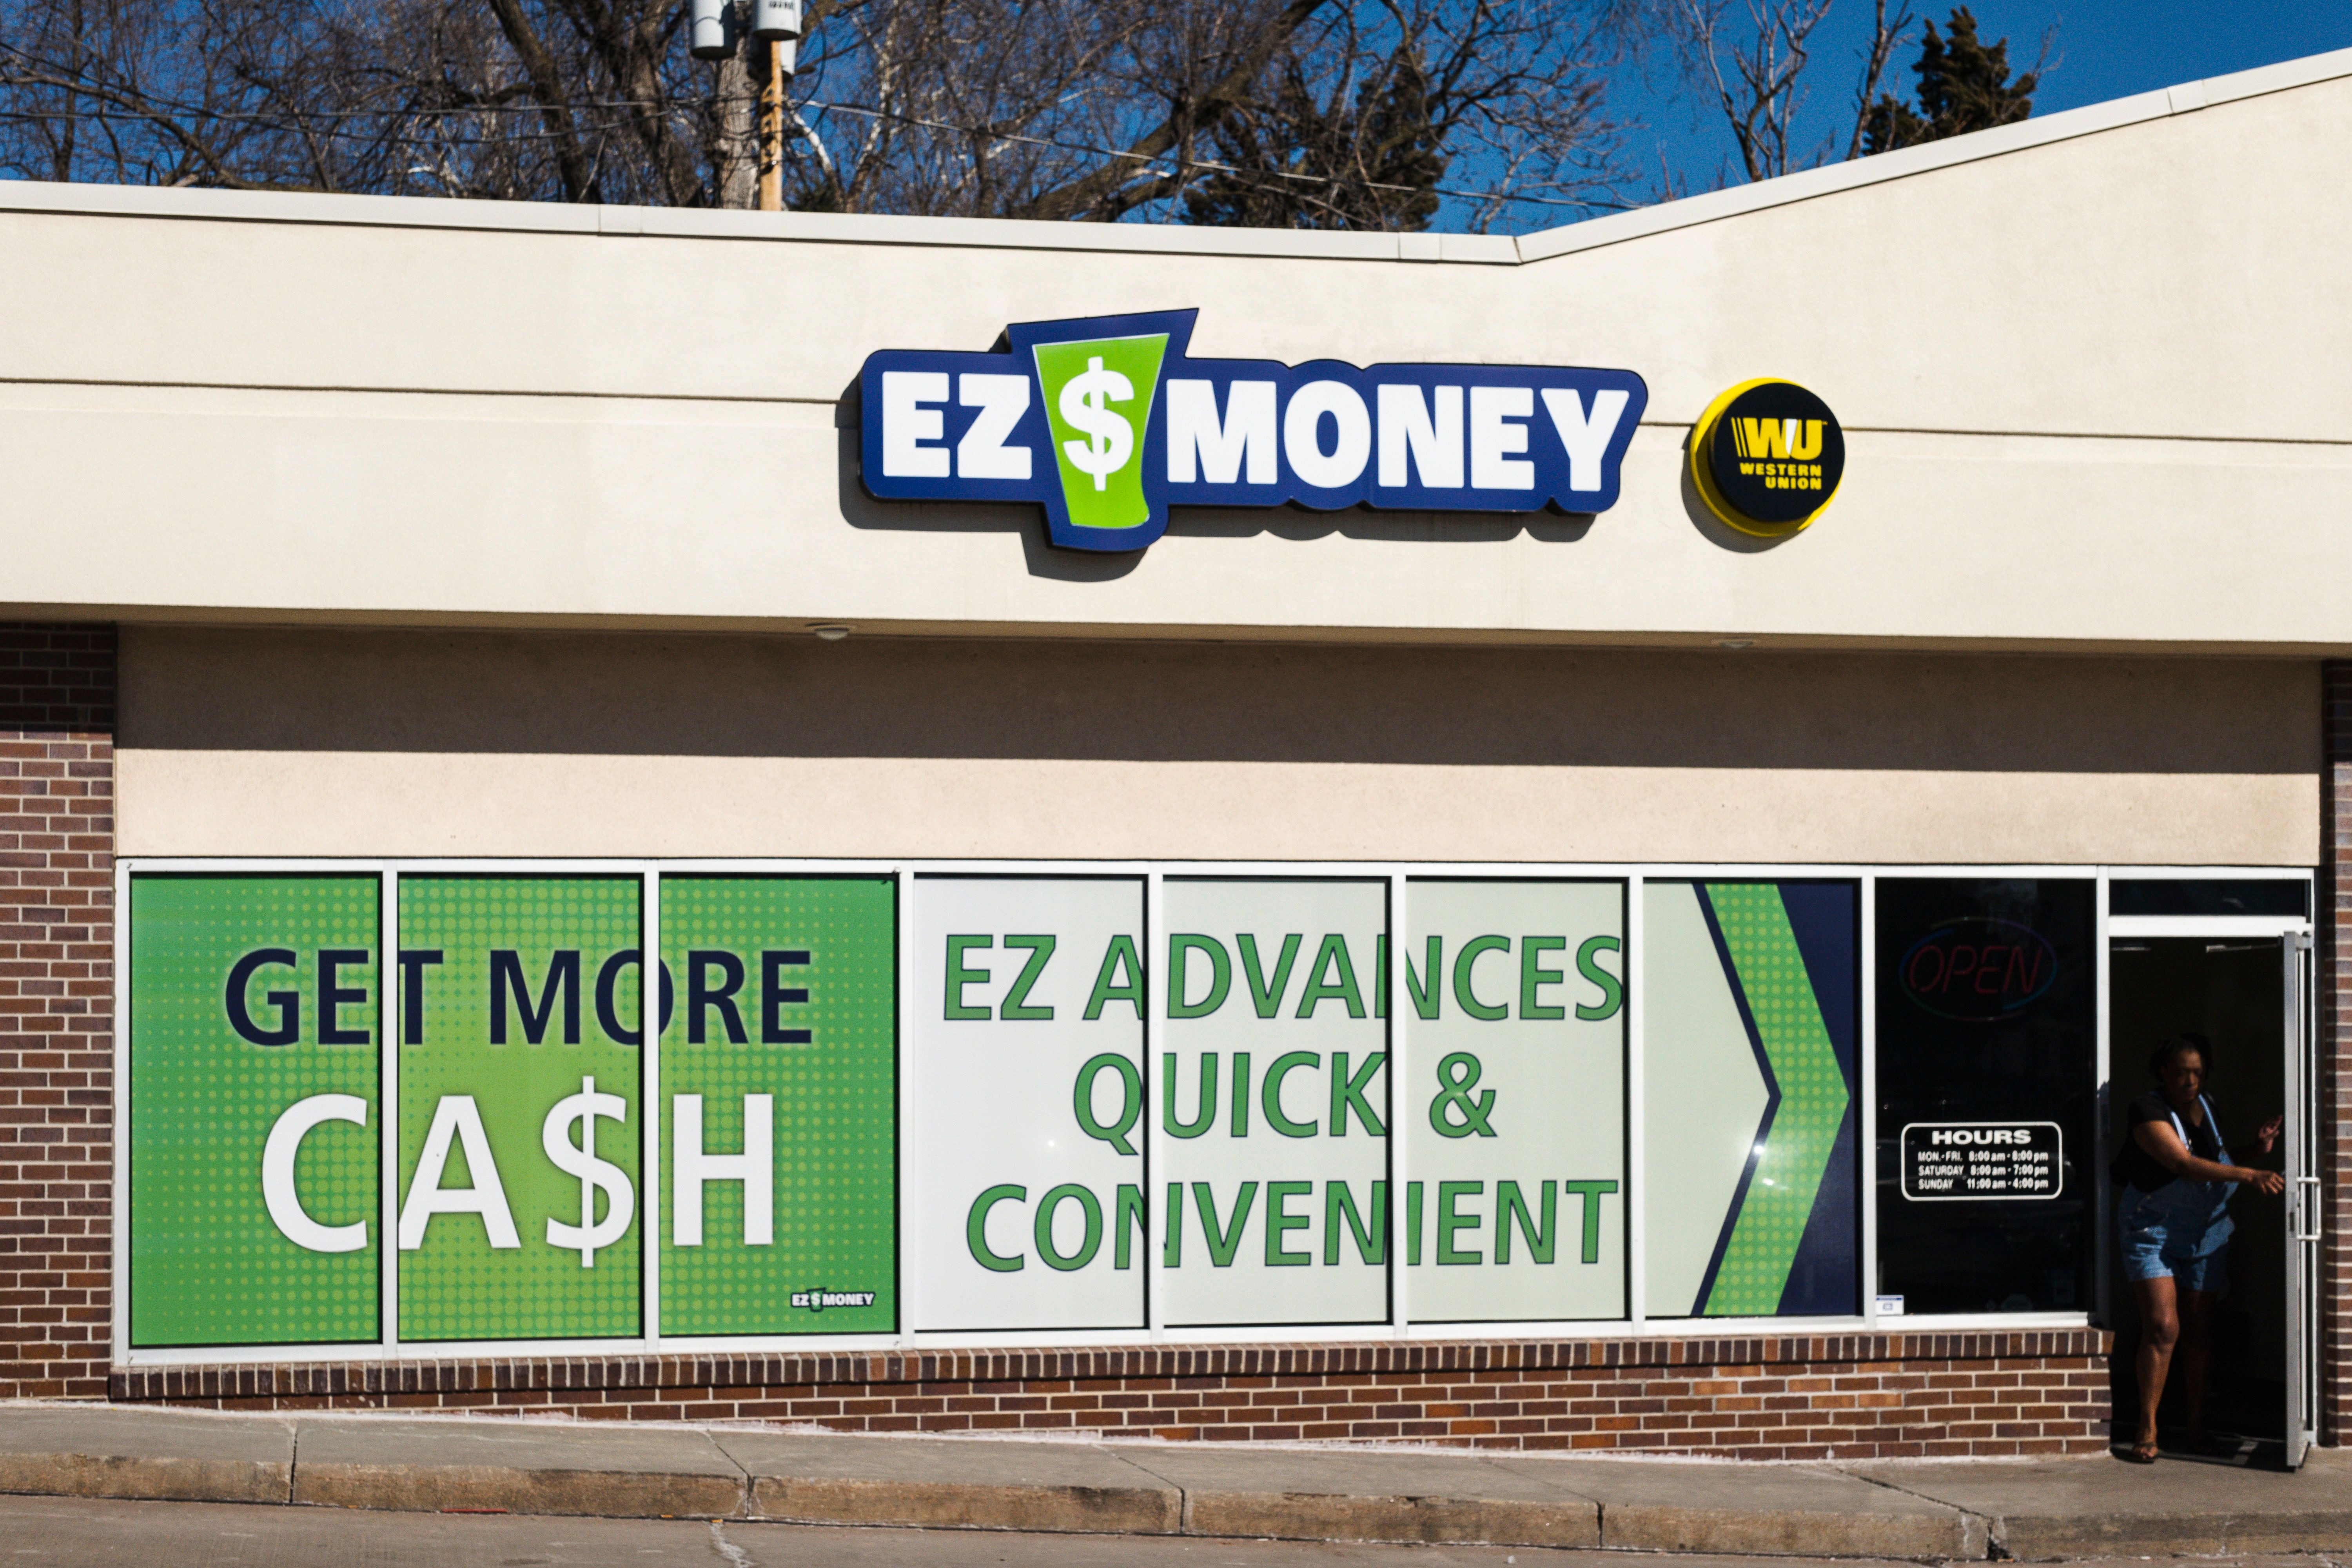 FILE - This Feb. 17, 2017 file photo shows an EZ Money Check Cashing store in Omaha, Neb. About 80 Nebraska businesses offer payday loans, according to the state Department of Banking and Finance, and several of these businesses, including EZ Money, have multiple storefronts. (AP Photo/Nati Harnik, File)